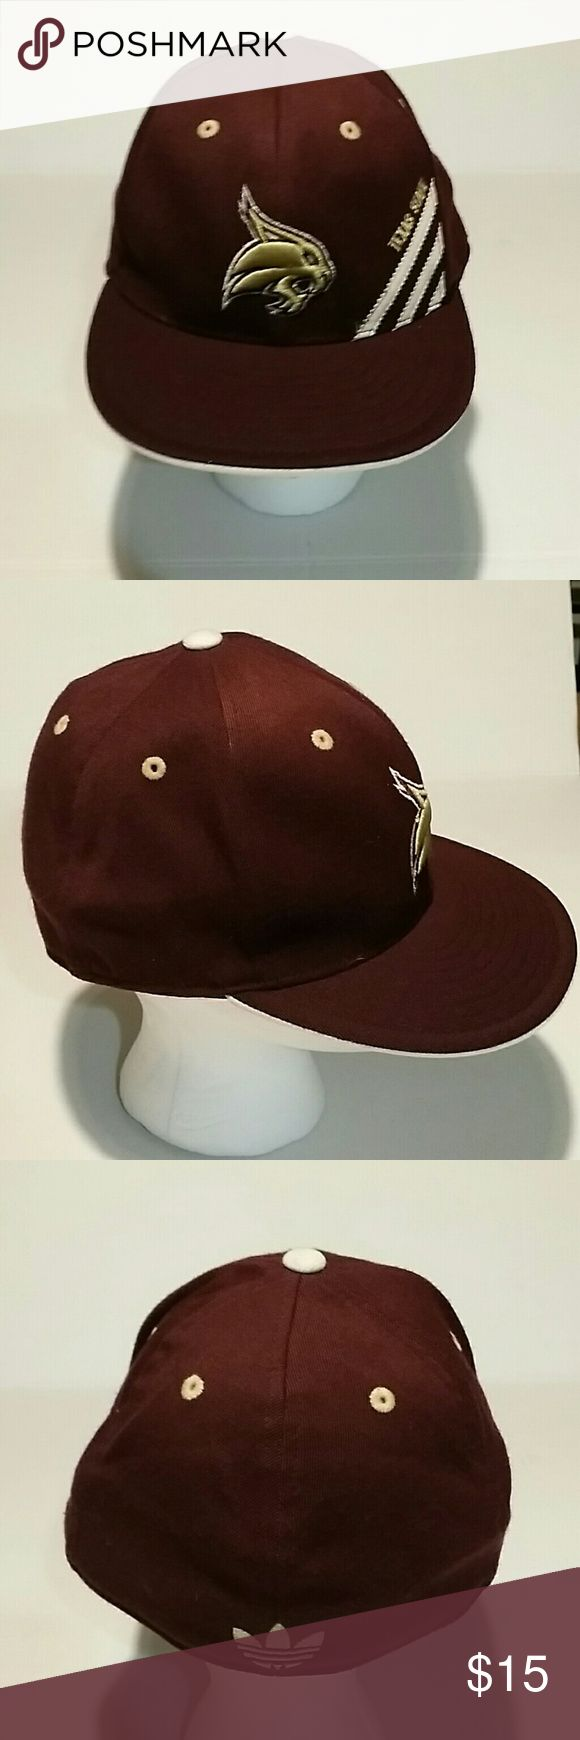 Texas State bobcats hat 210 Fitted Size: 6 7/8- 7 1/4 Accessories Hats